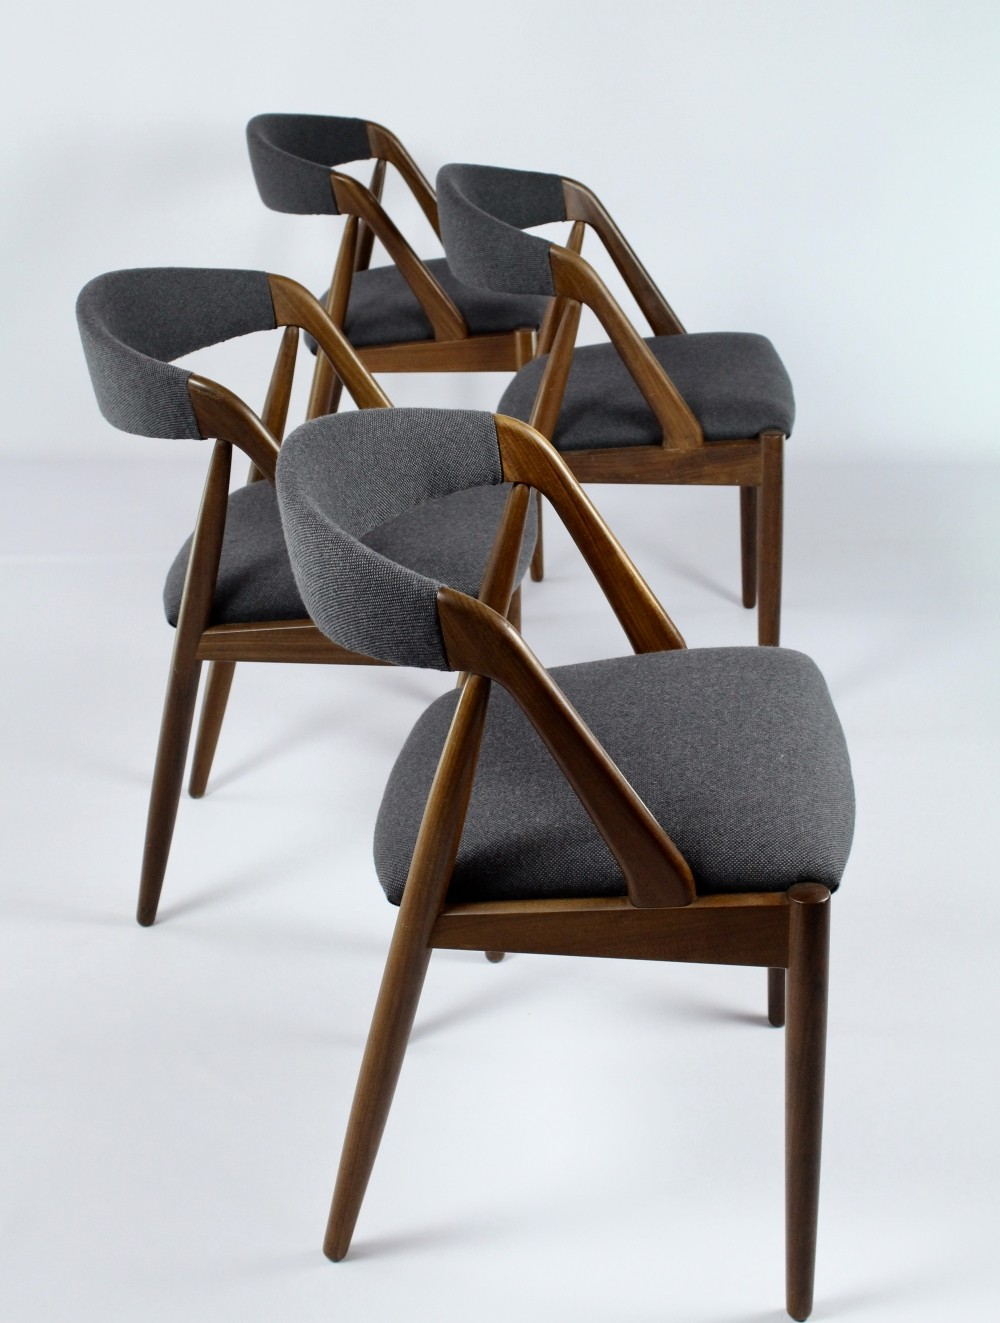 Set of 4 dinner chairs by Kai Kristiansen for Andersen Schou